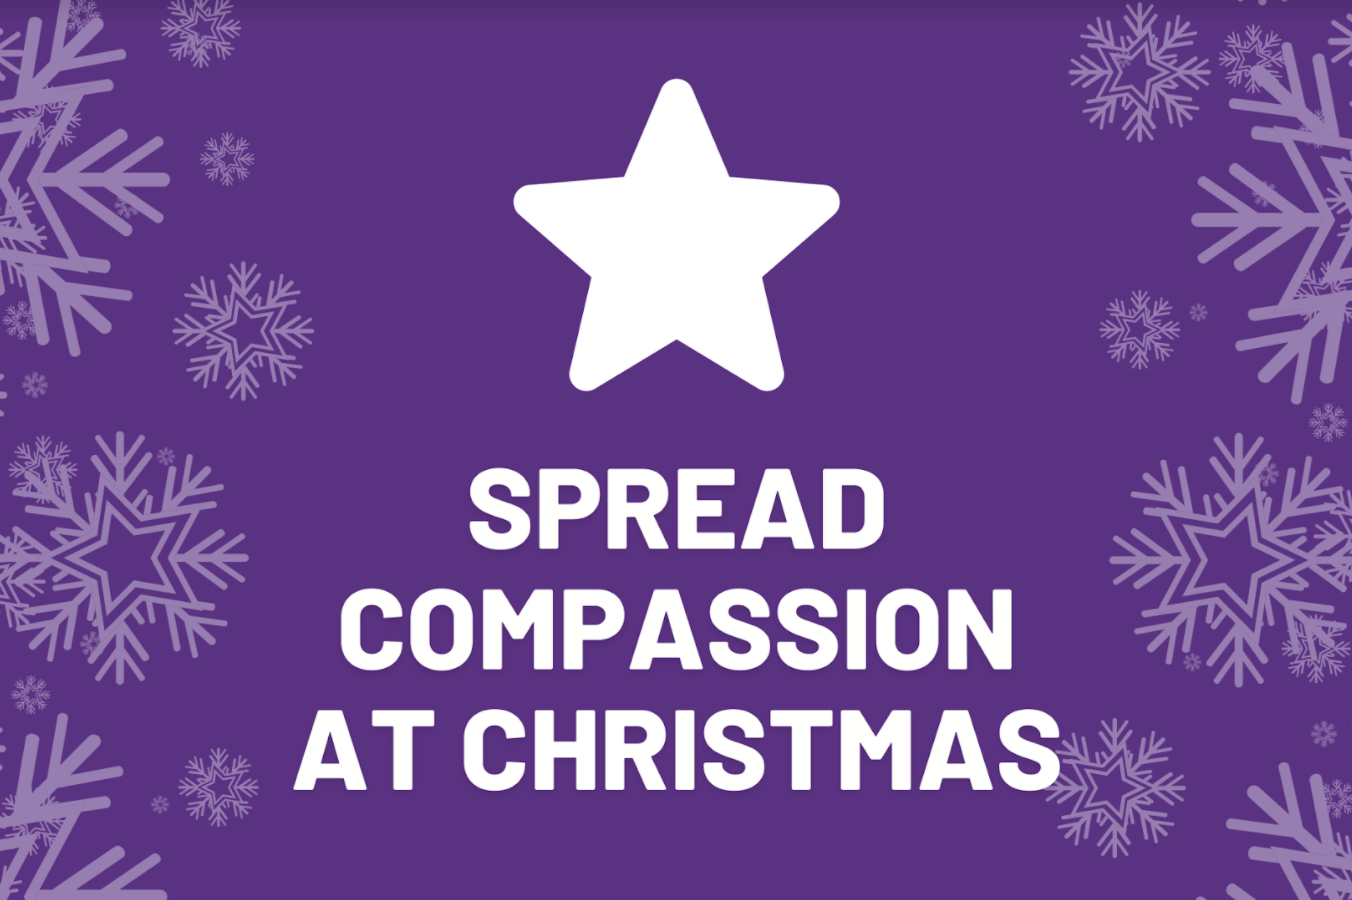 The Compassionate Communities Christmas campaign logo